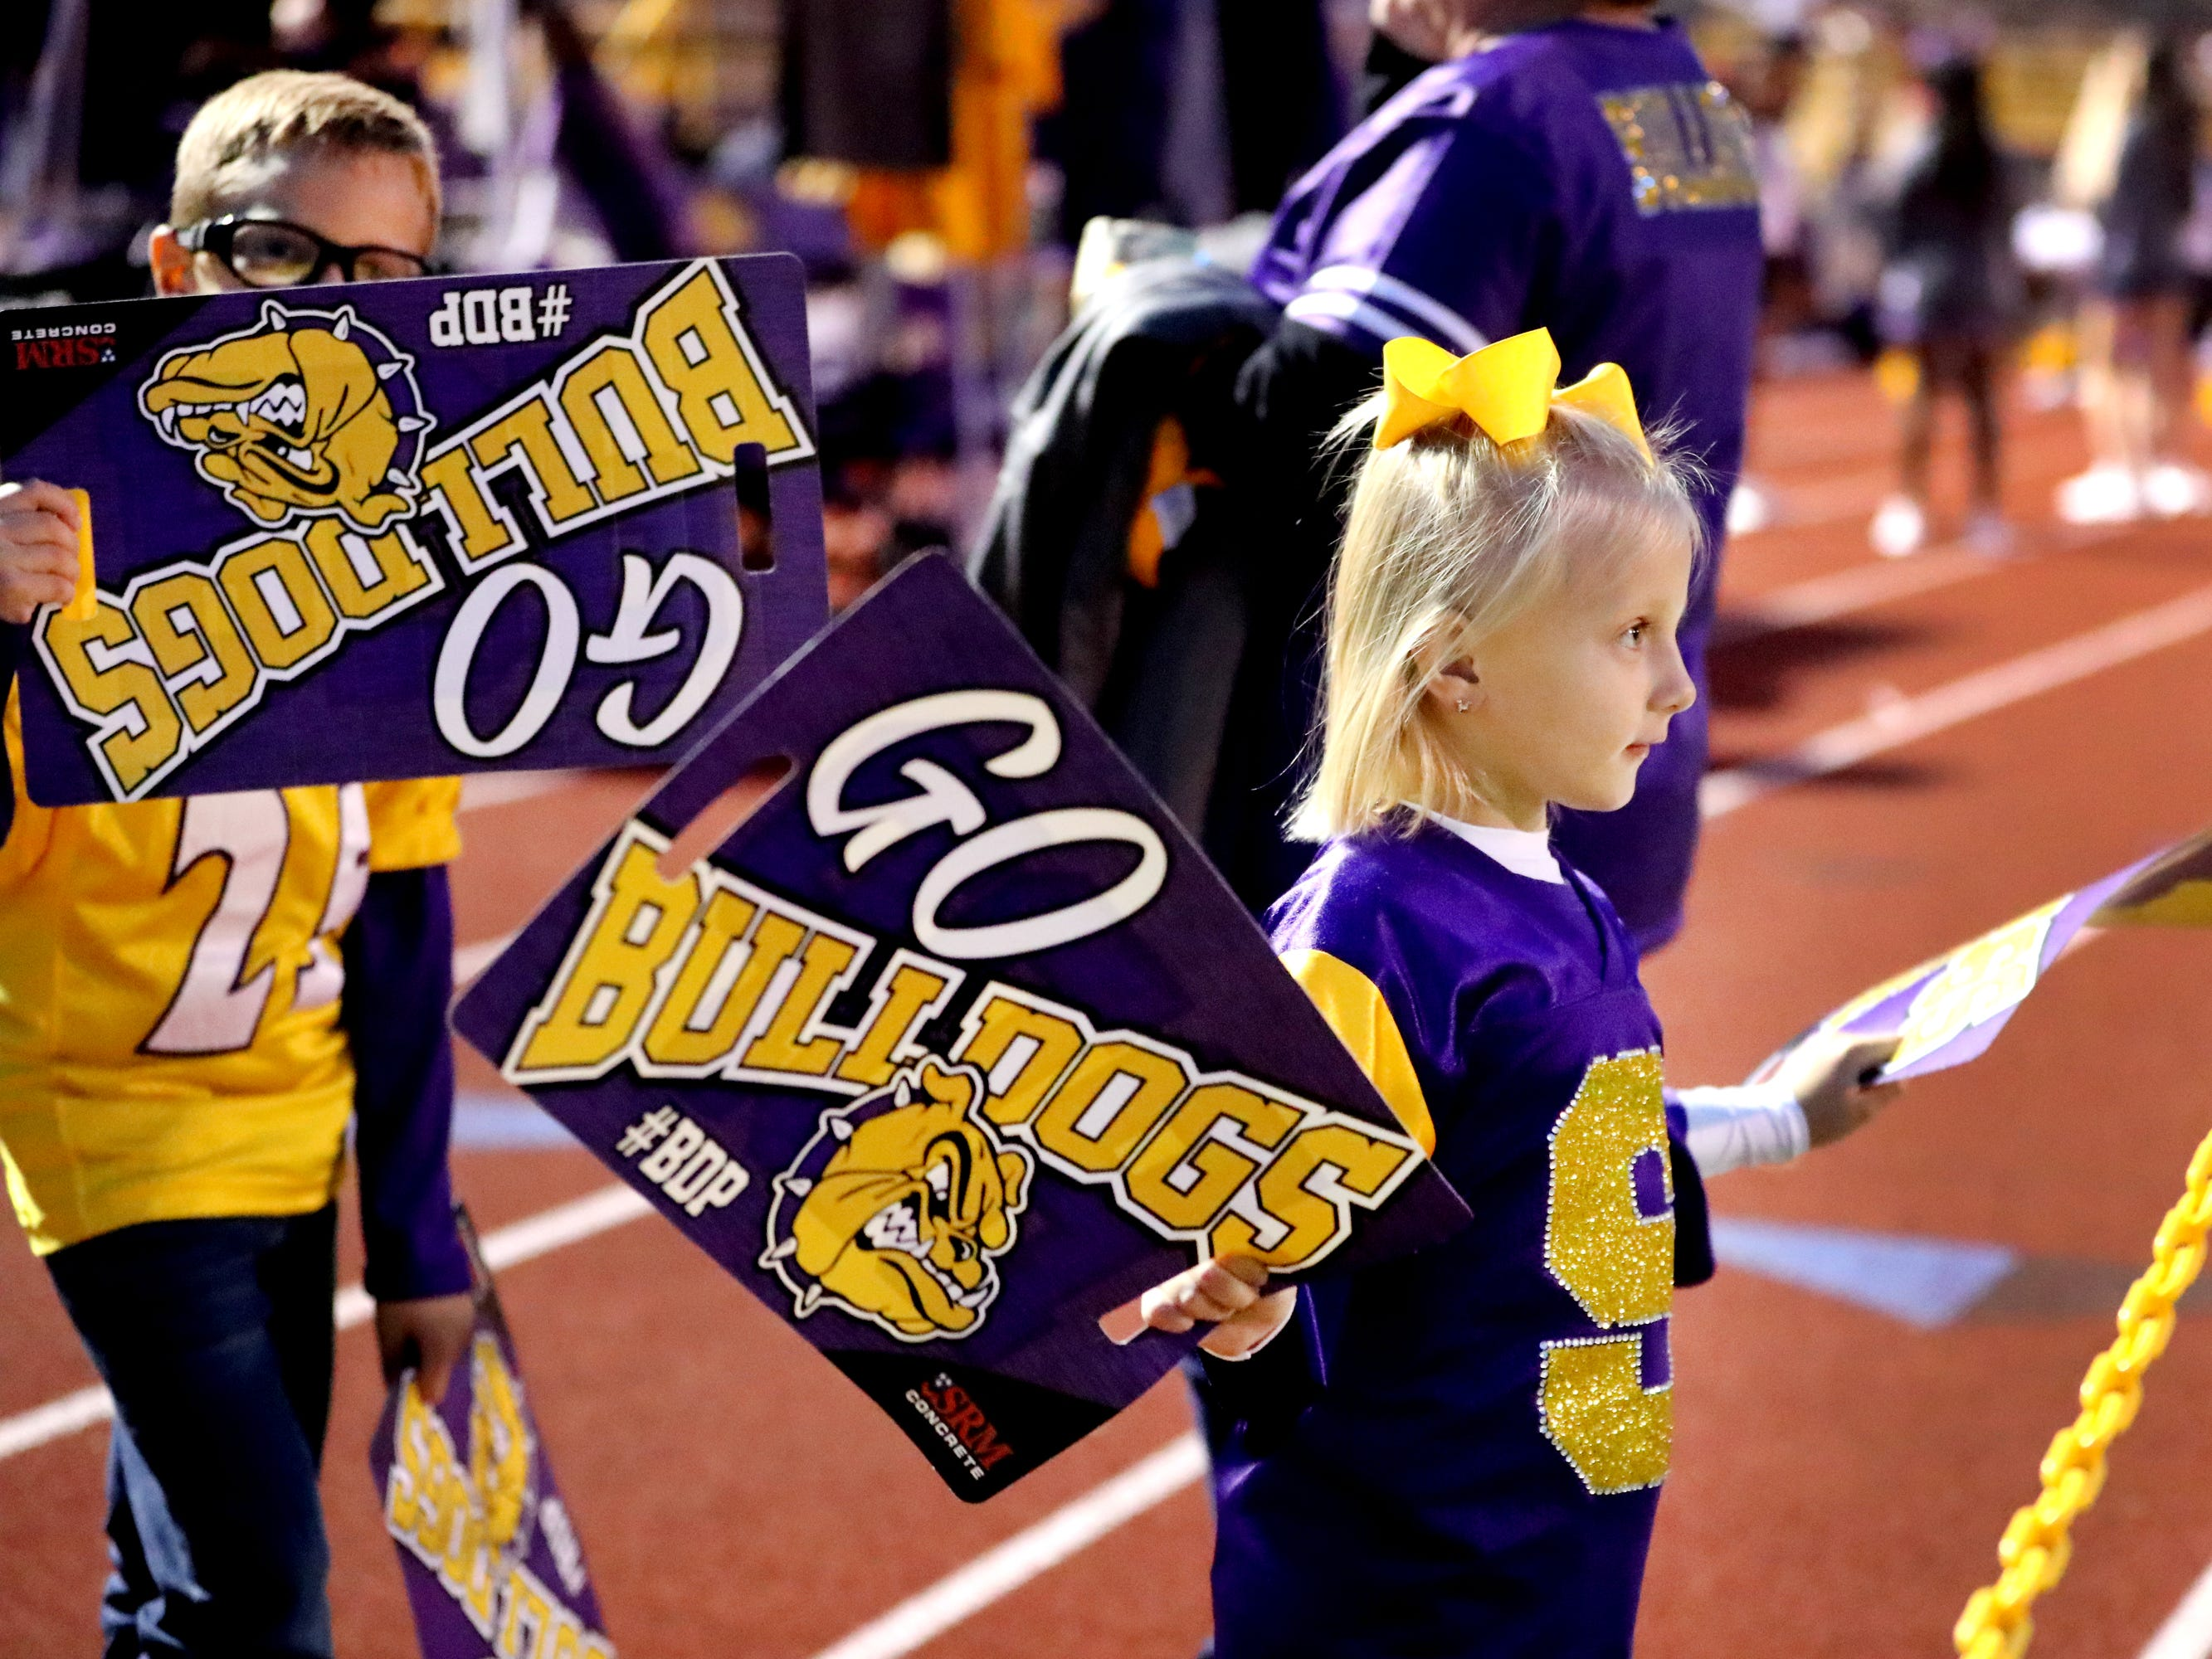 Smyrna fans Jayson Phillips, 7, and Emilee  Phillips, 5, get ready of the game against Stewarts Creek at Smyrna High School on Friday, Oct. 12, 2018, where their grandfather Dennis Johnson, will be honored during halftime.